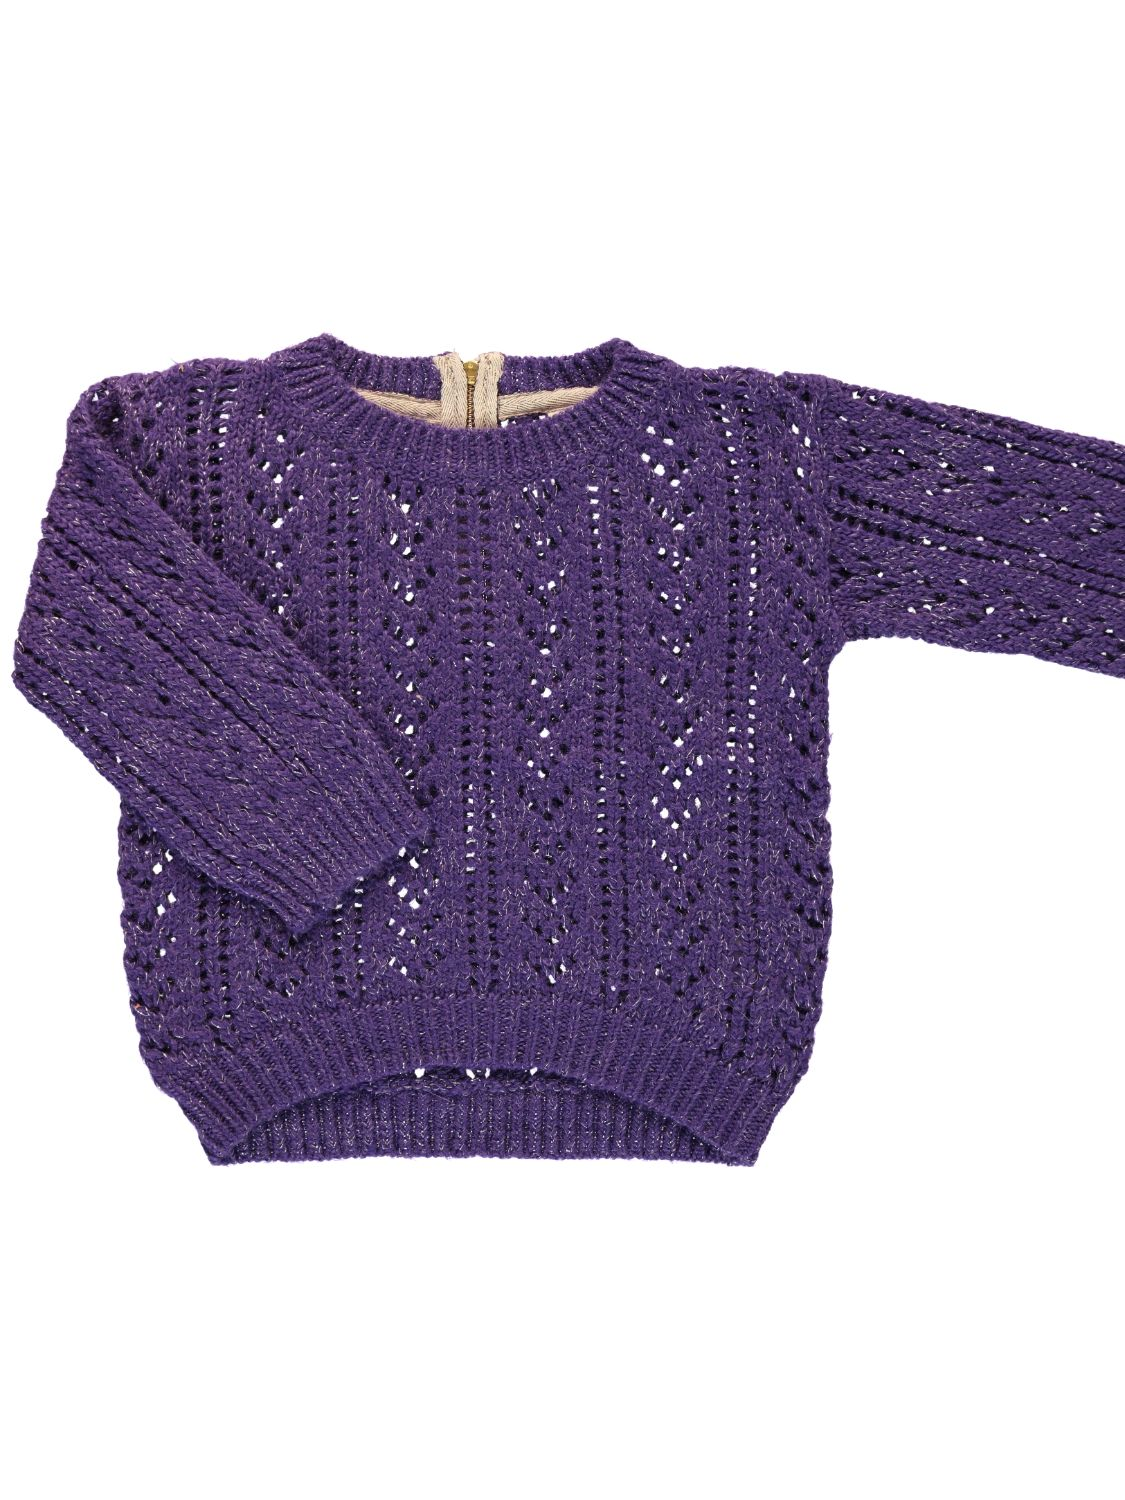 American Outfitters Sweater